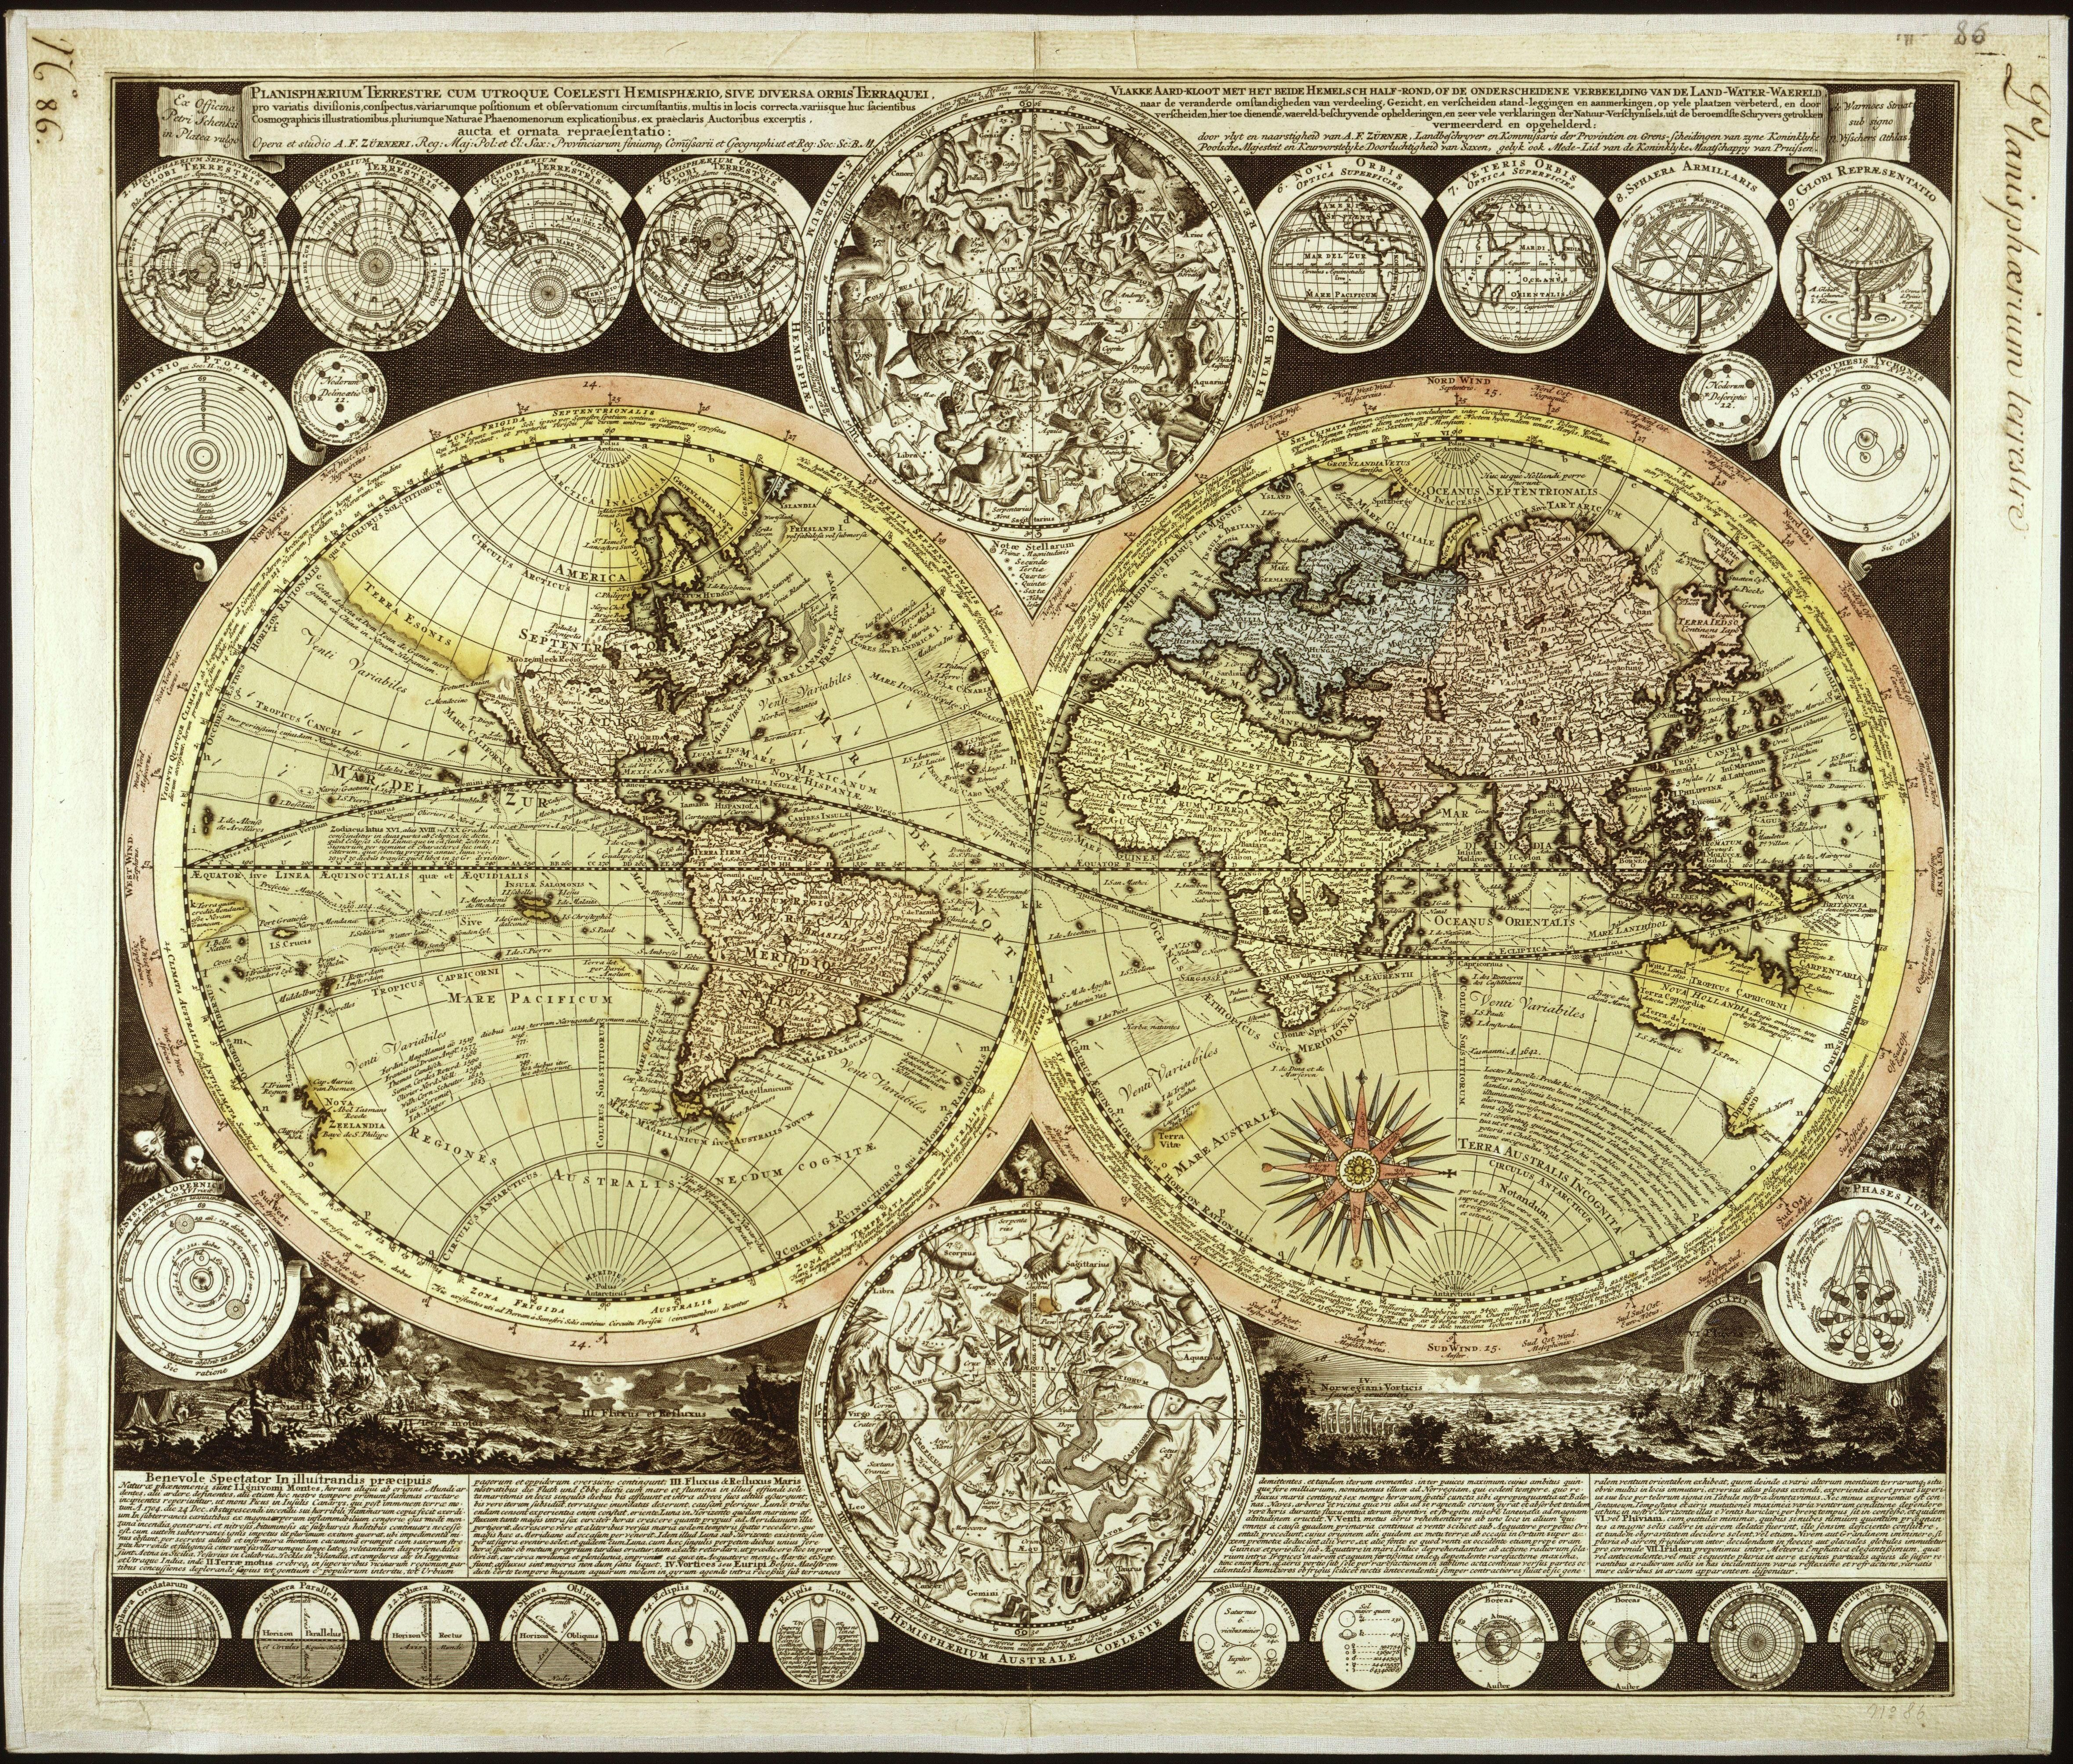 Map of the world and celestial bodies, by Adam Friedrich Zuerner ...